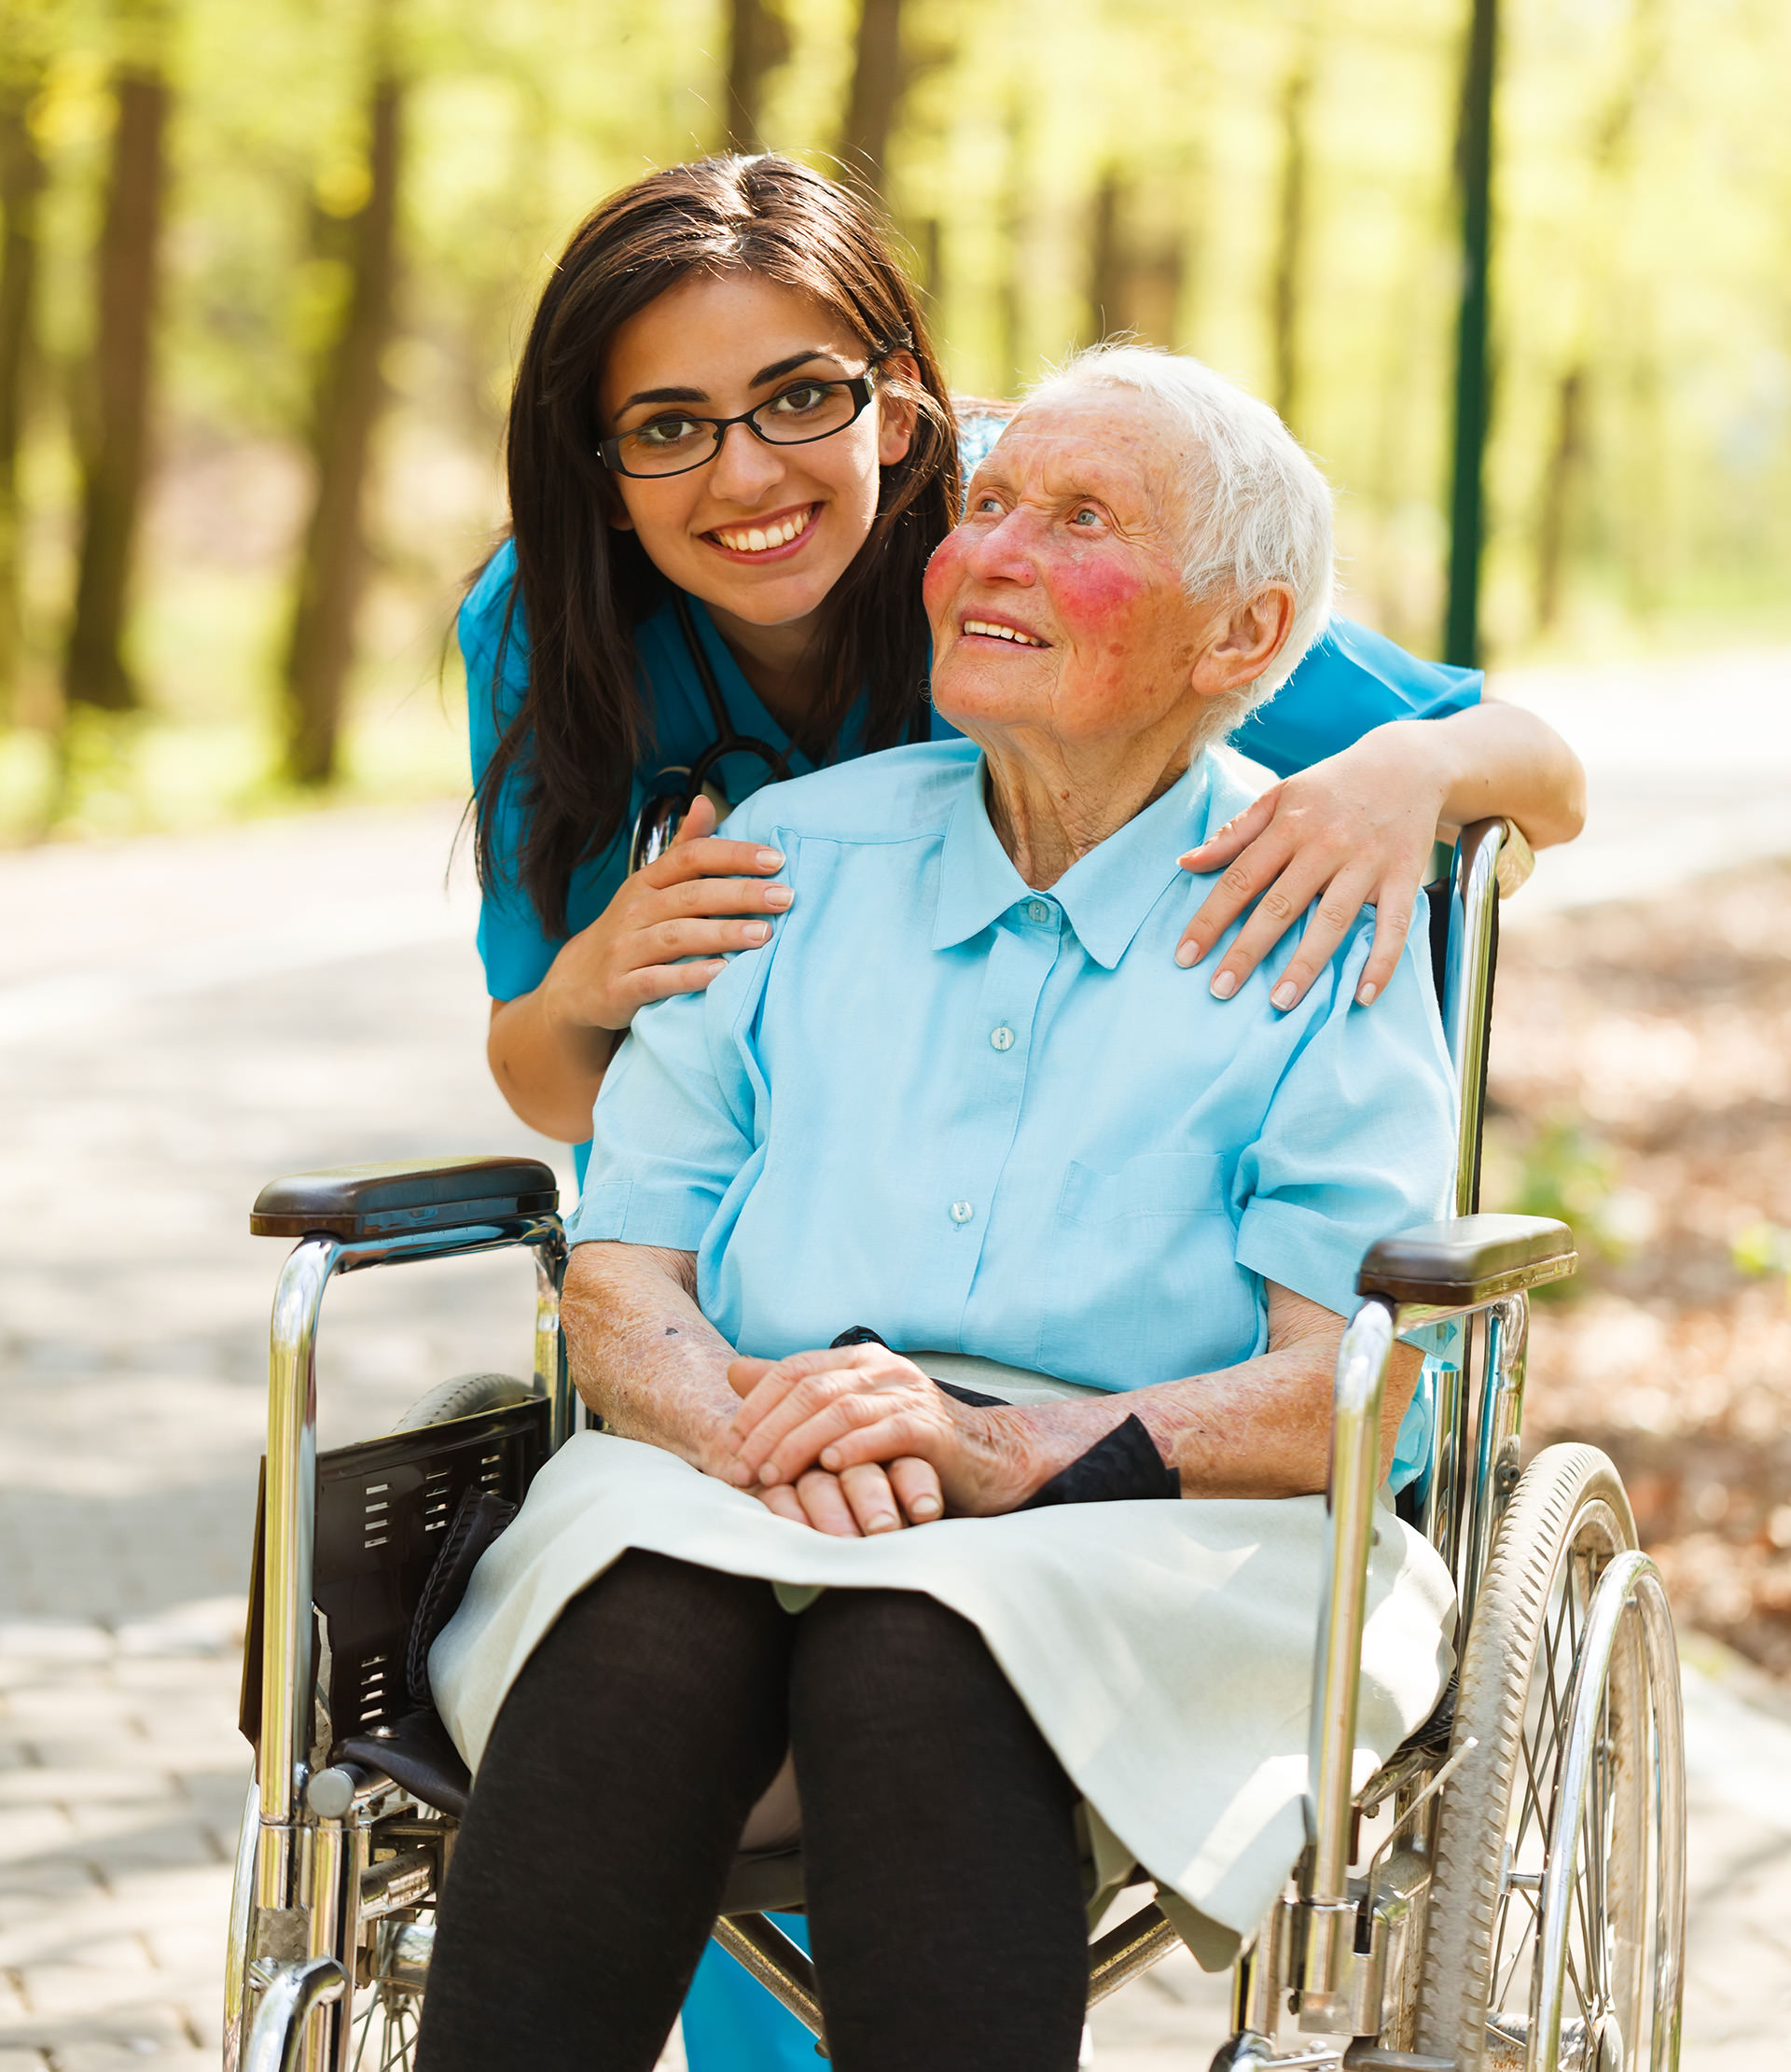 Woman in Wheelchair and Caregiver Nurse